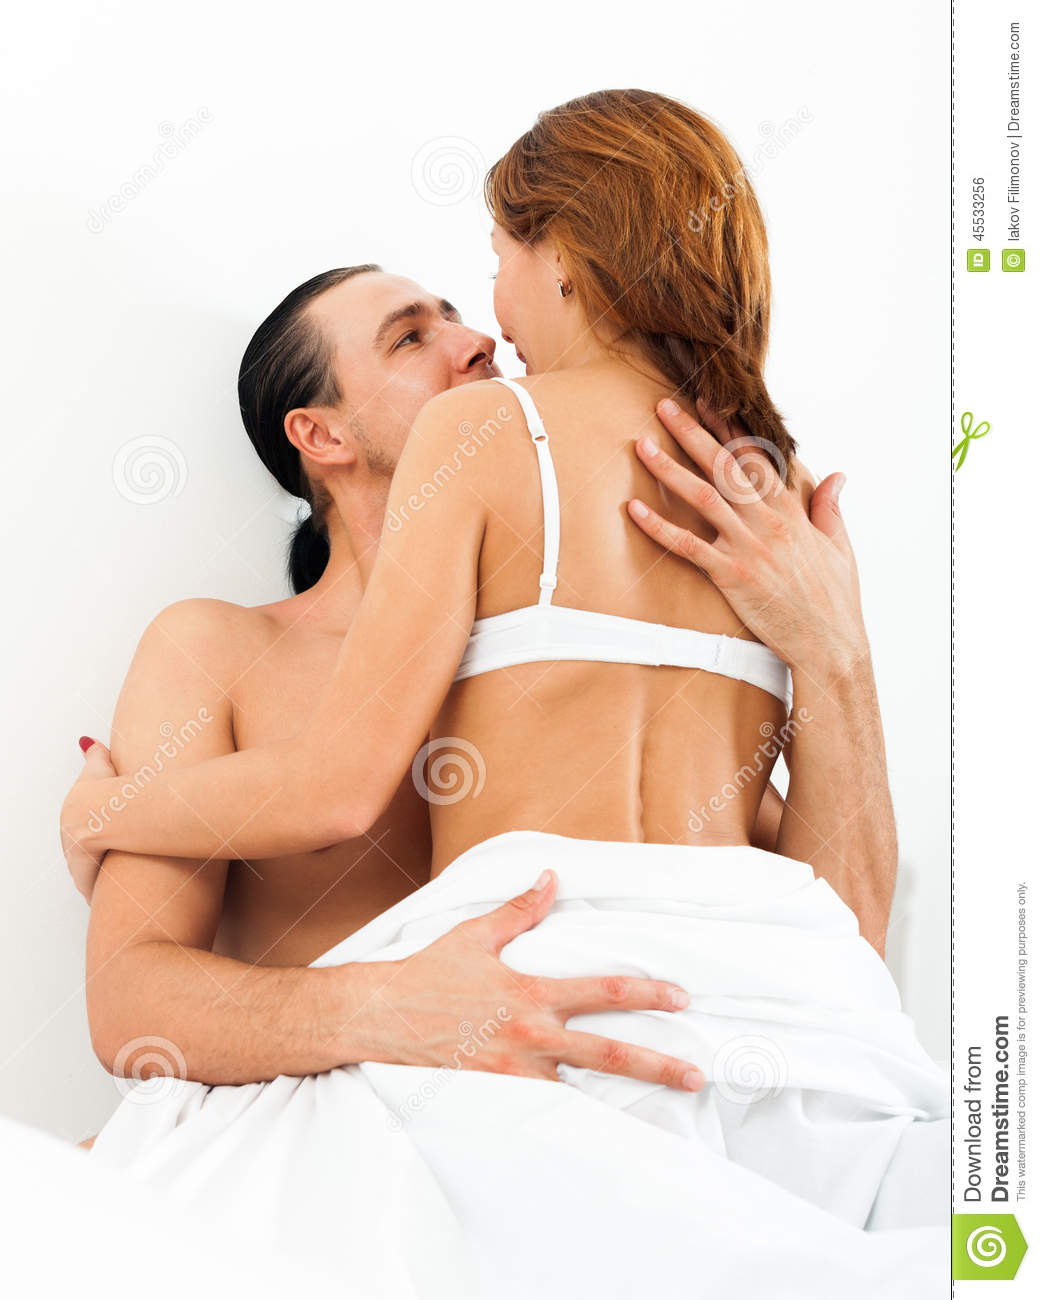 Man kiss woman without clothes in bed